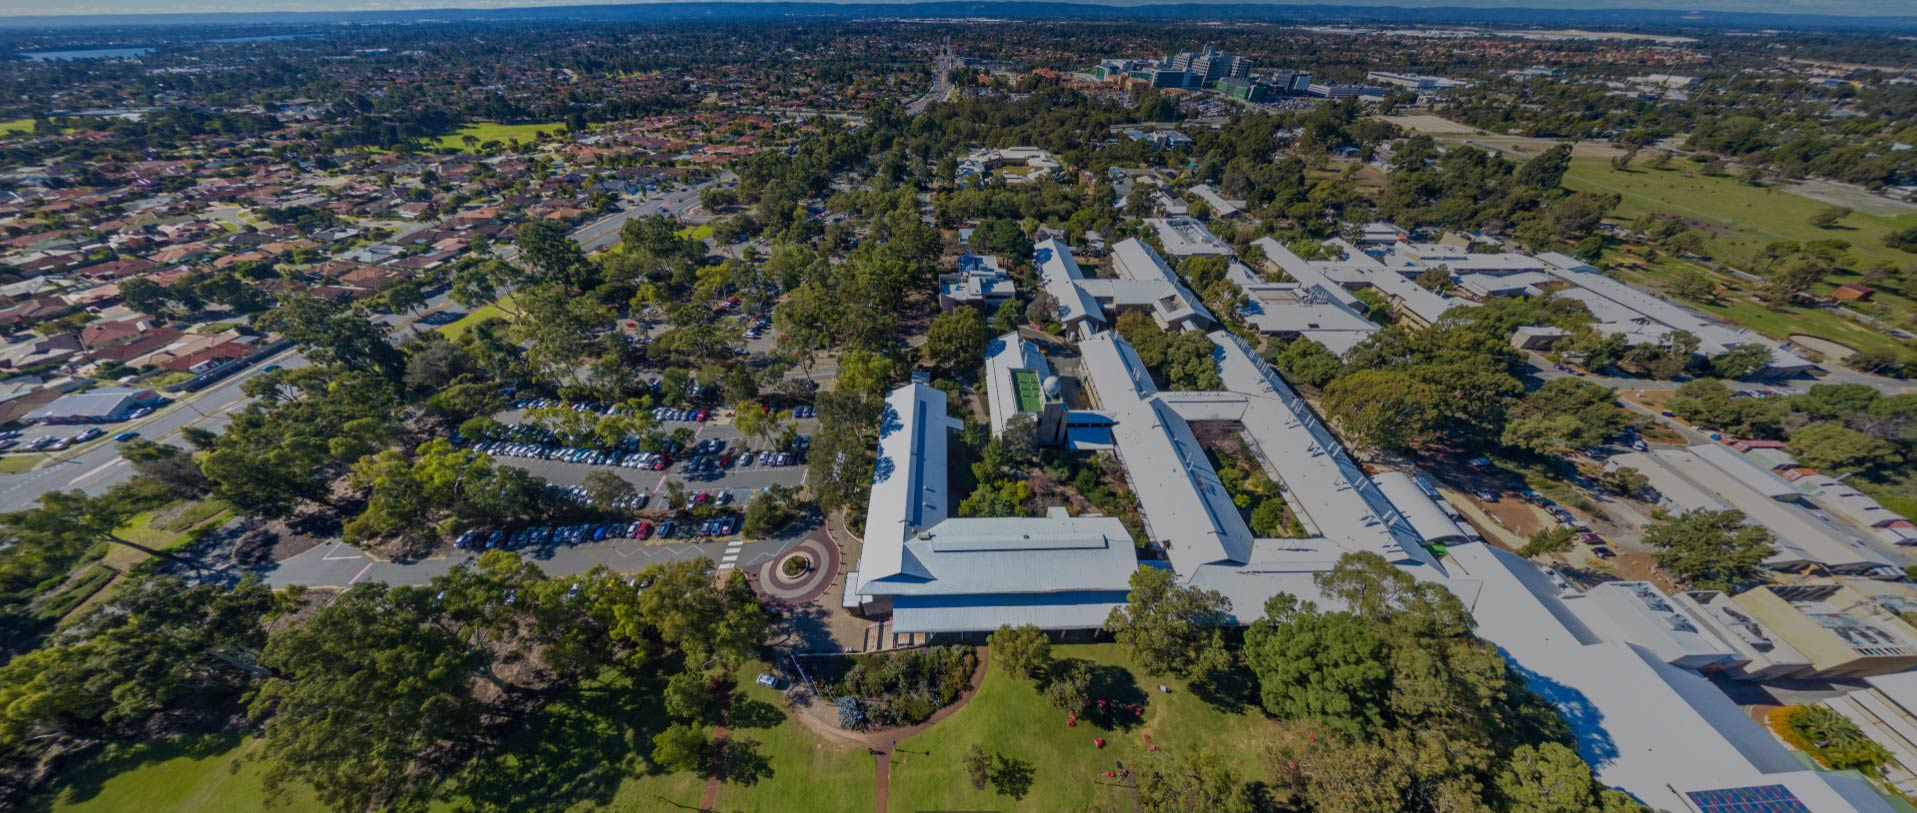 Aerial of Murdoch's Perth Campus